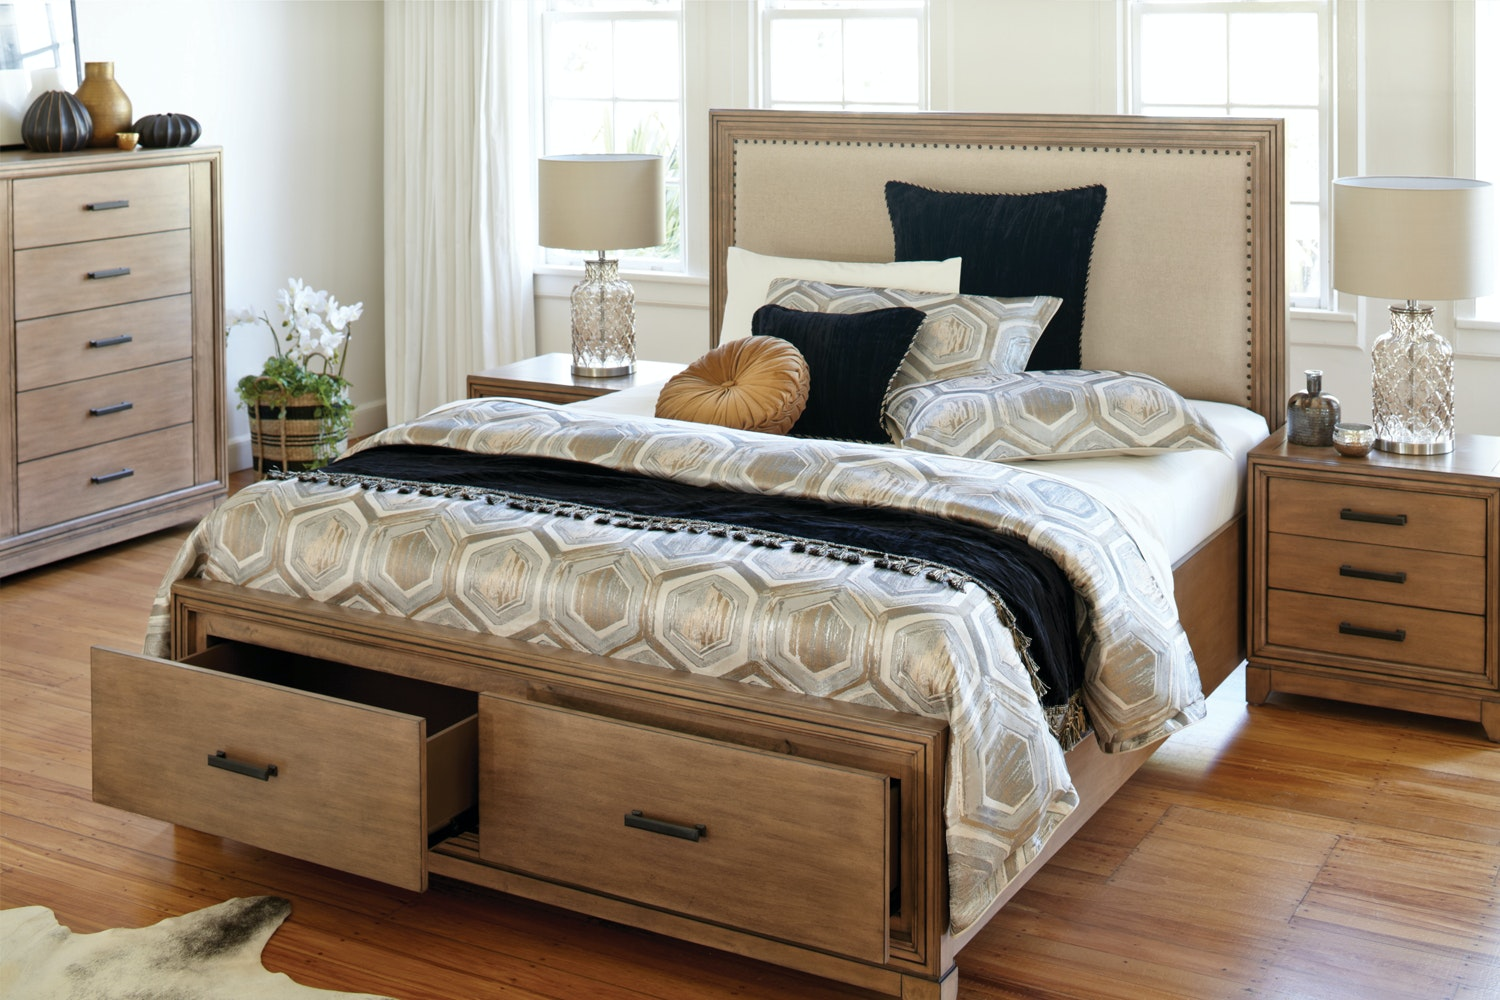 Mantra Super King Bed Frame